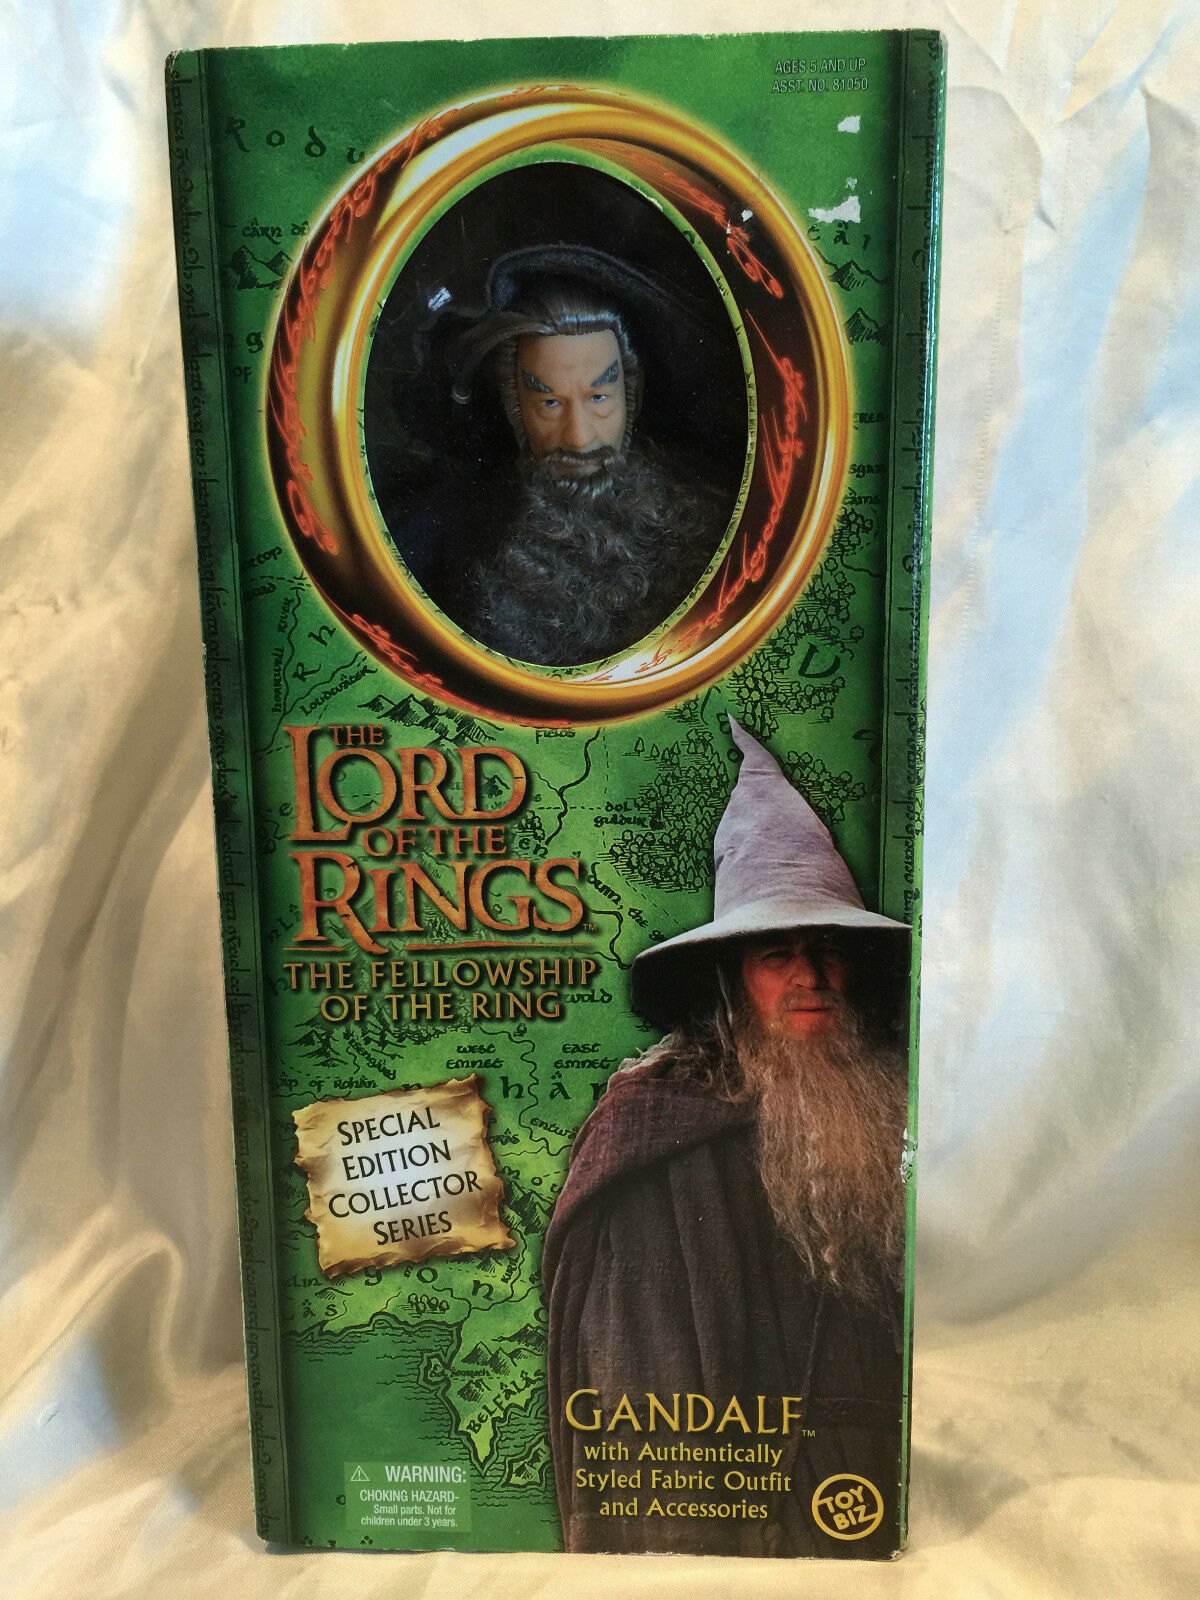 The Lord Of The Rings The Fellowship Of The Ring - Gandalf Special Edition NIB